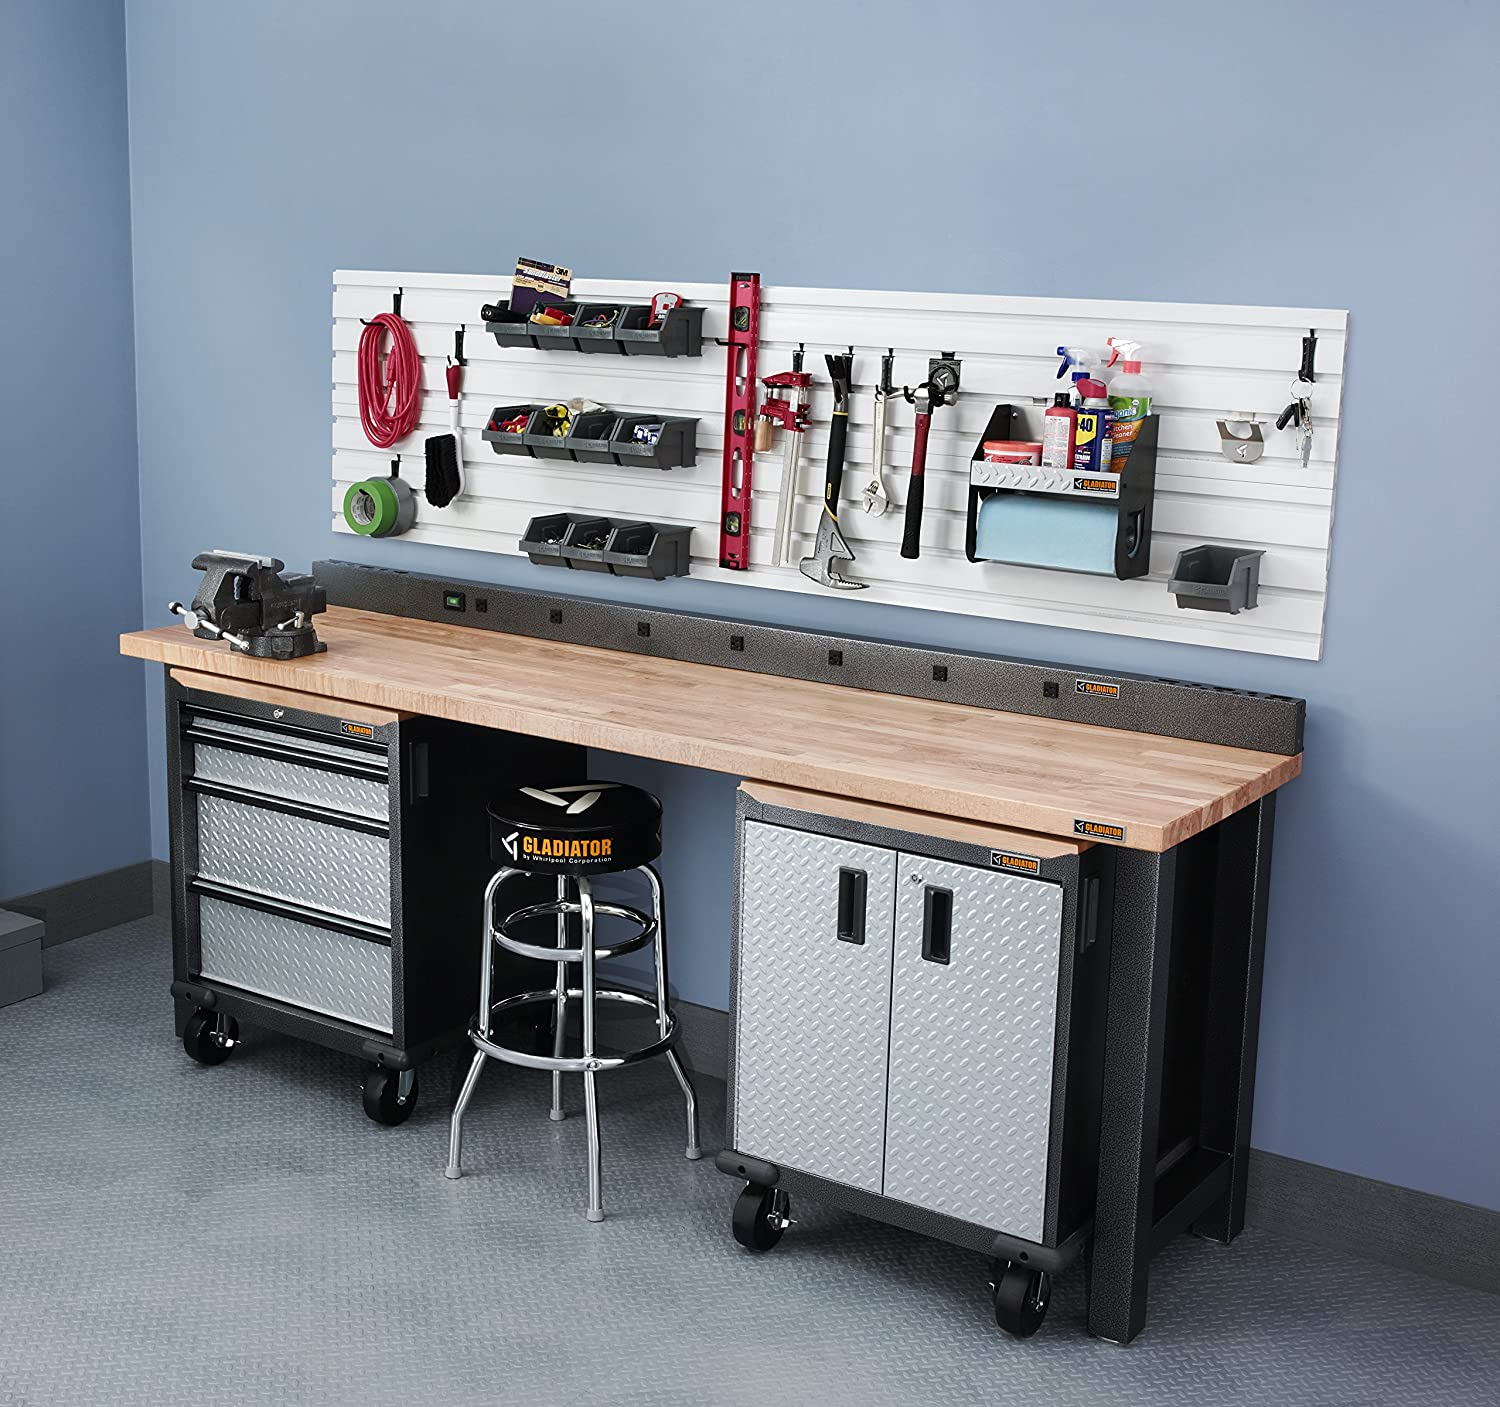 craftsman tags cabinets black for sale concept size of shelves impressive wall gladiator with premium full amazing metal sears cabinet photo storage garage